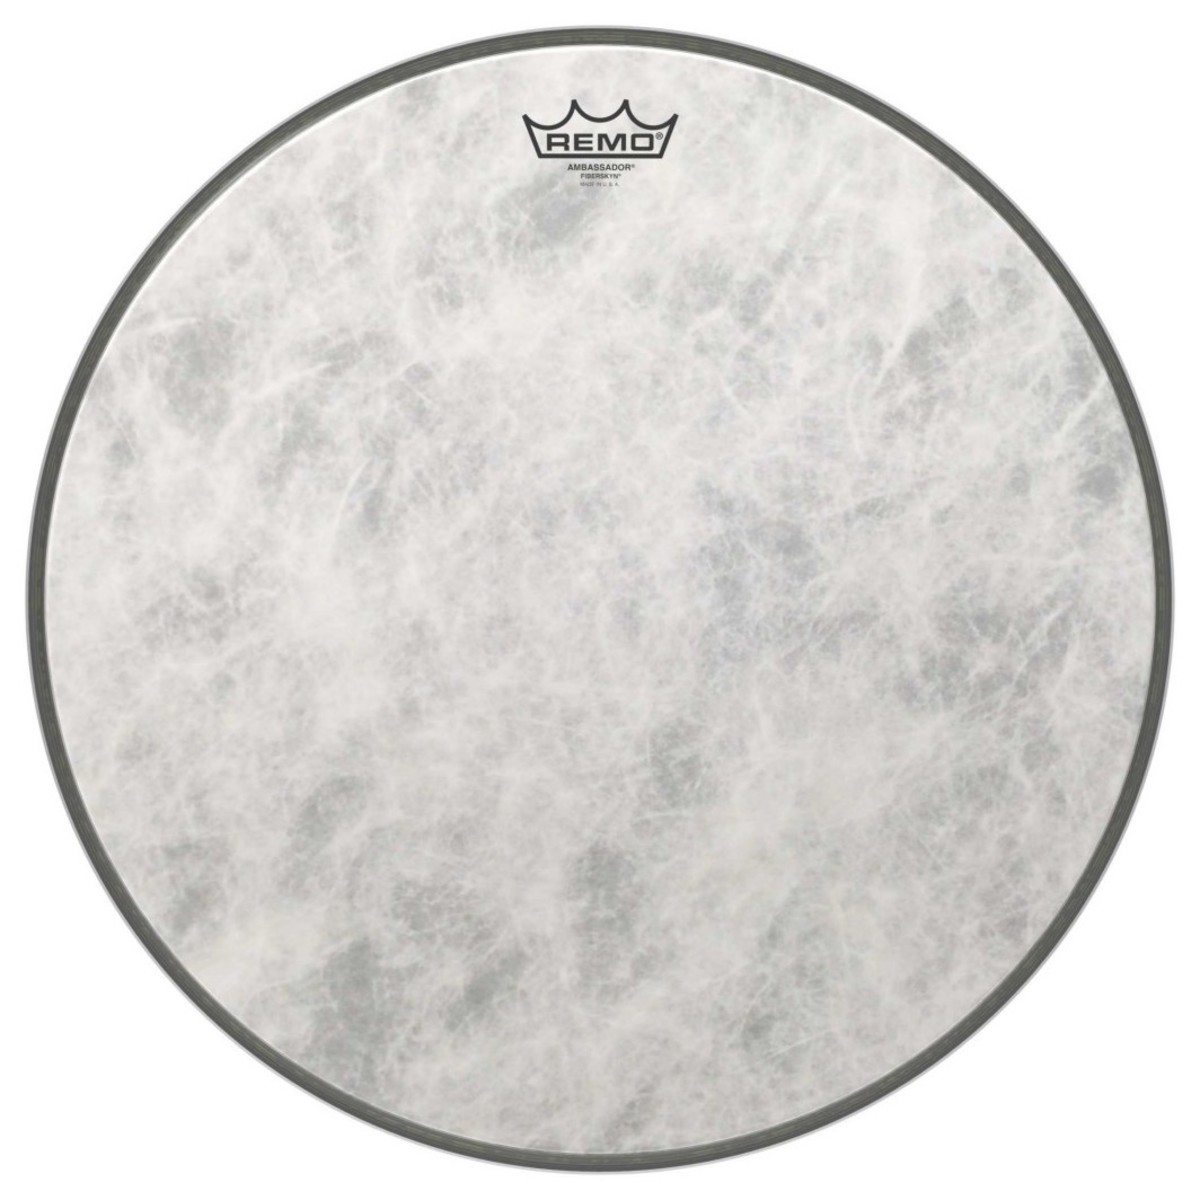 Click to view product details and reviews for Remo Ambassador Fiberskyn 3 18 Bass Drum Head.